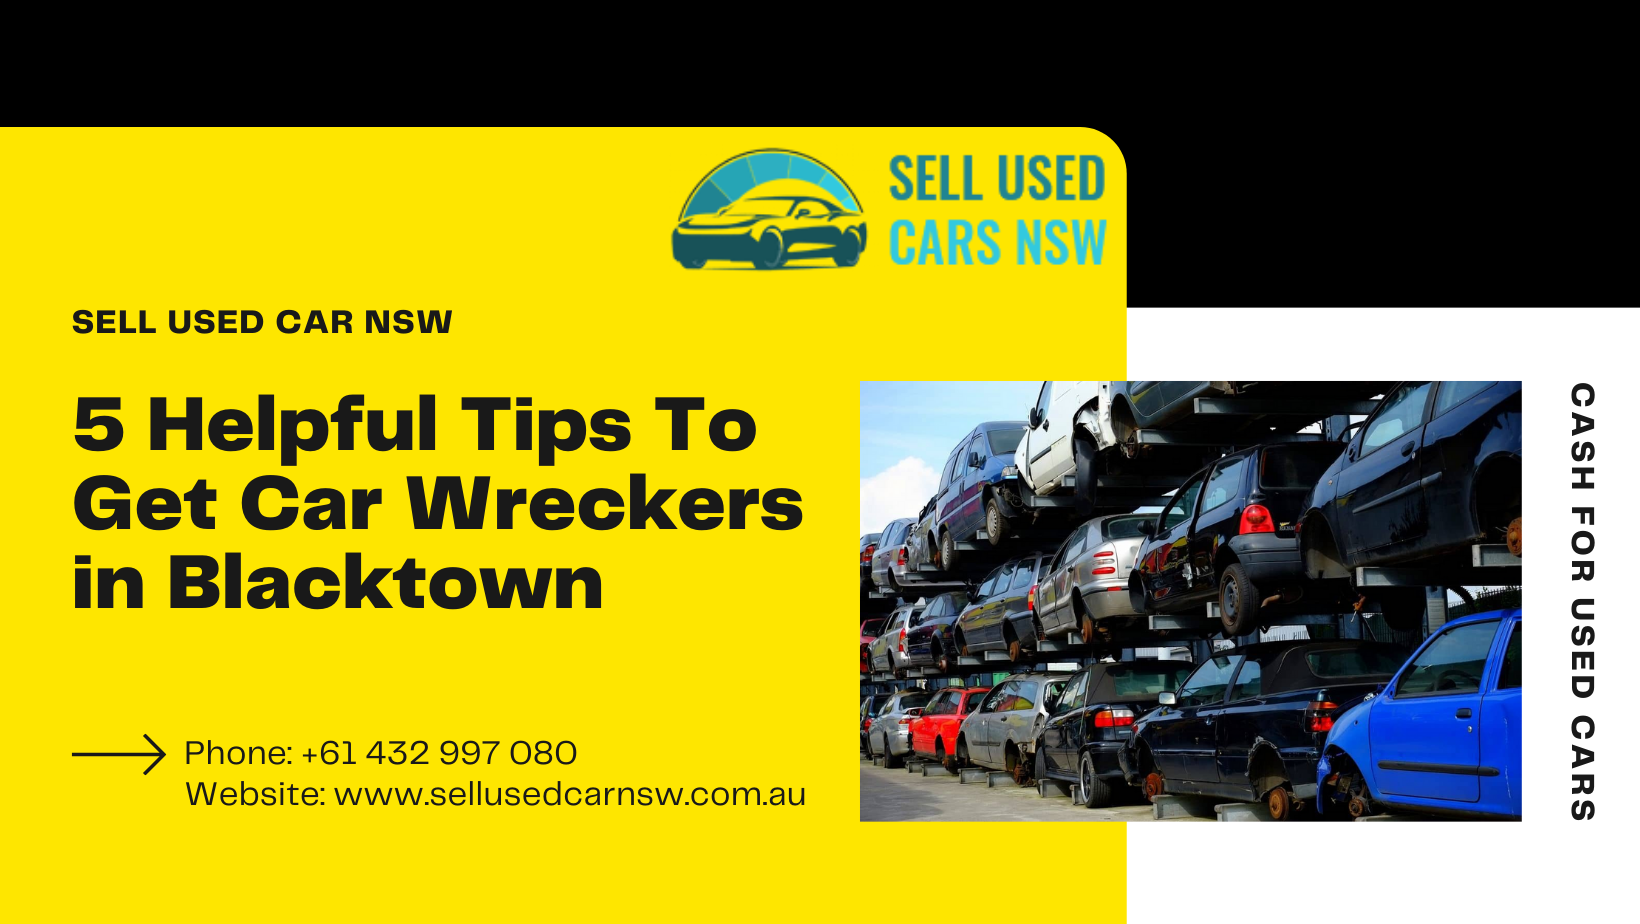 5 Helpful Tips To Get Car Wreckers in Blacktown